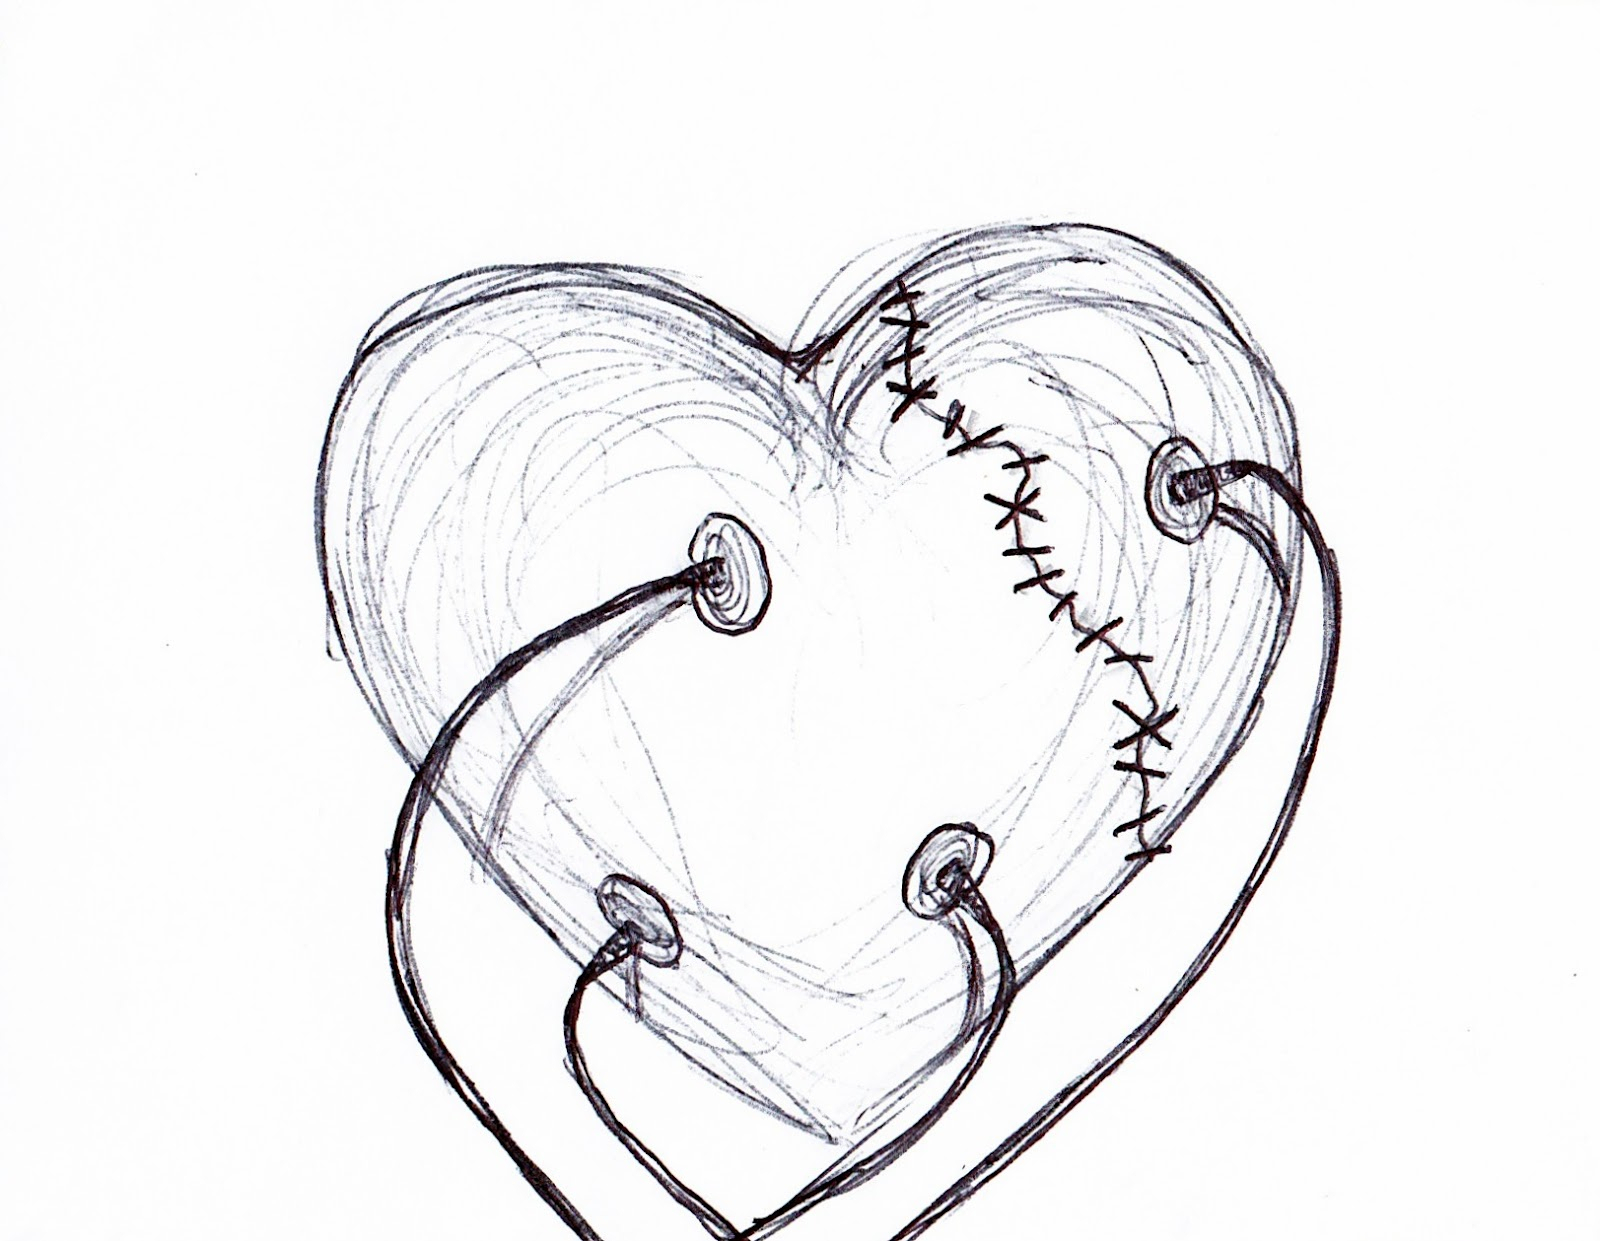 1600x1241 Broken Hearts Drawings Emo Drawings Of Broken Hearts In Pencil